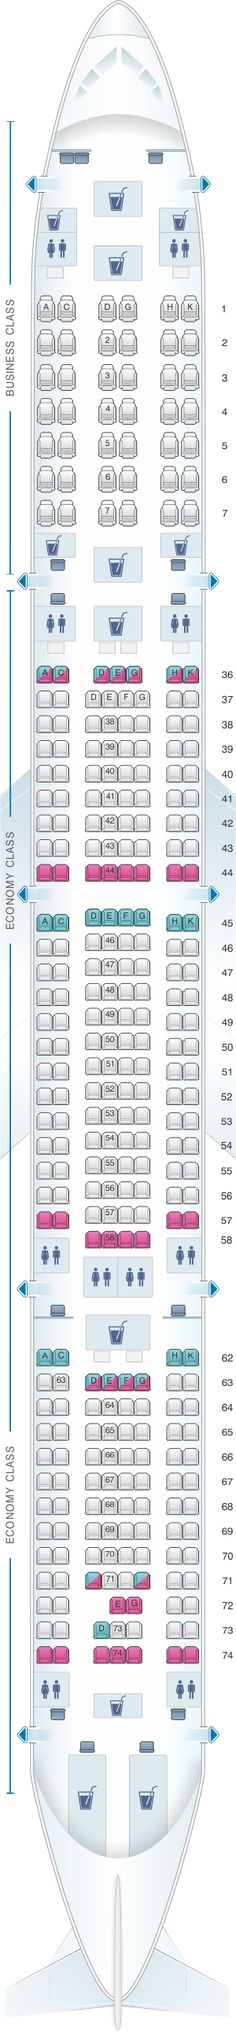 Seat Map Tap Portugal Airbus A330 Tap Portugal